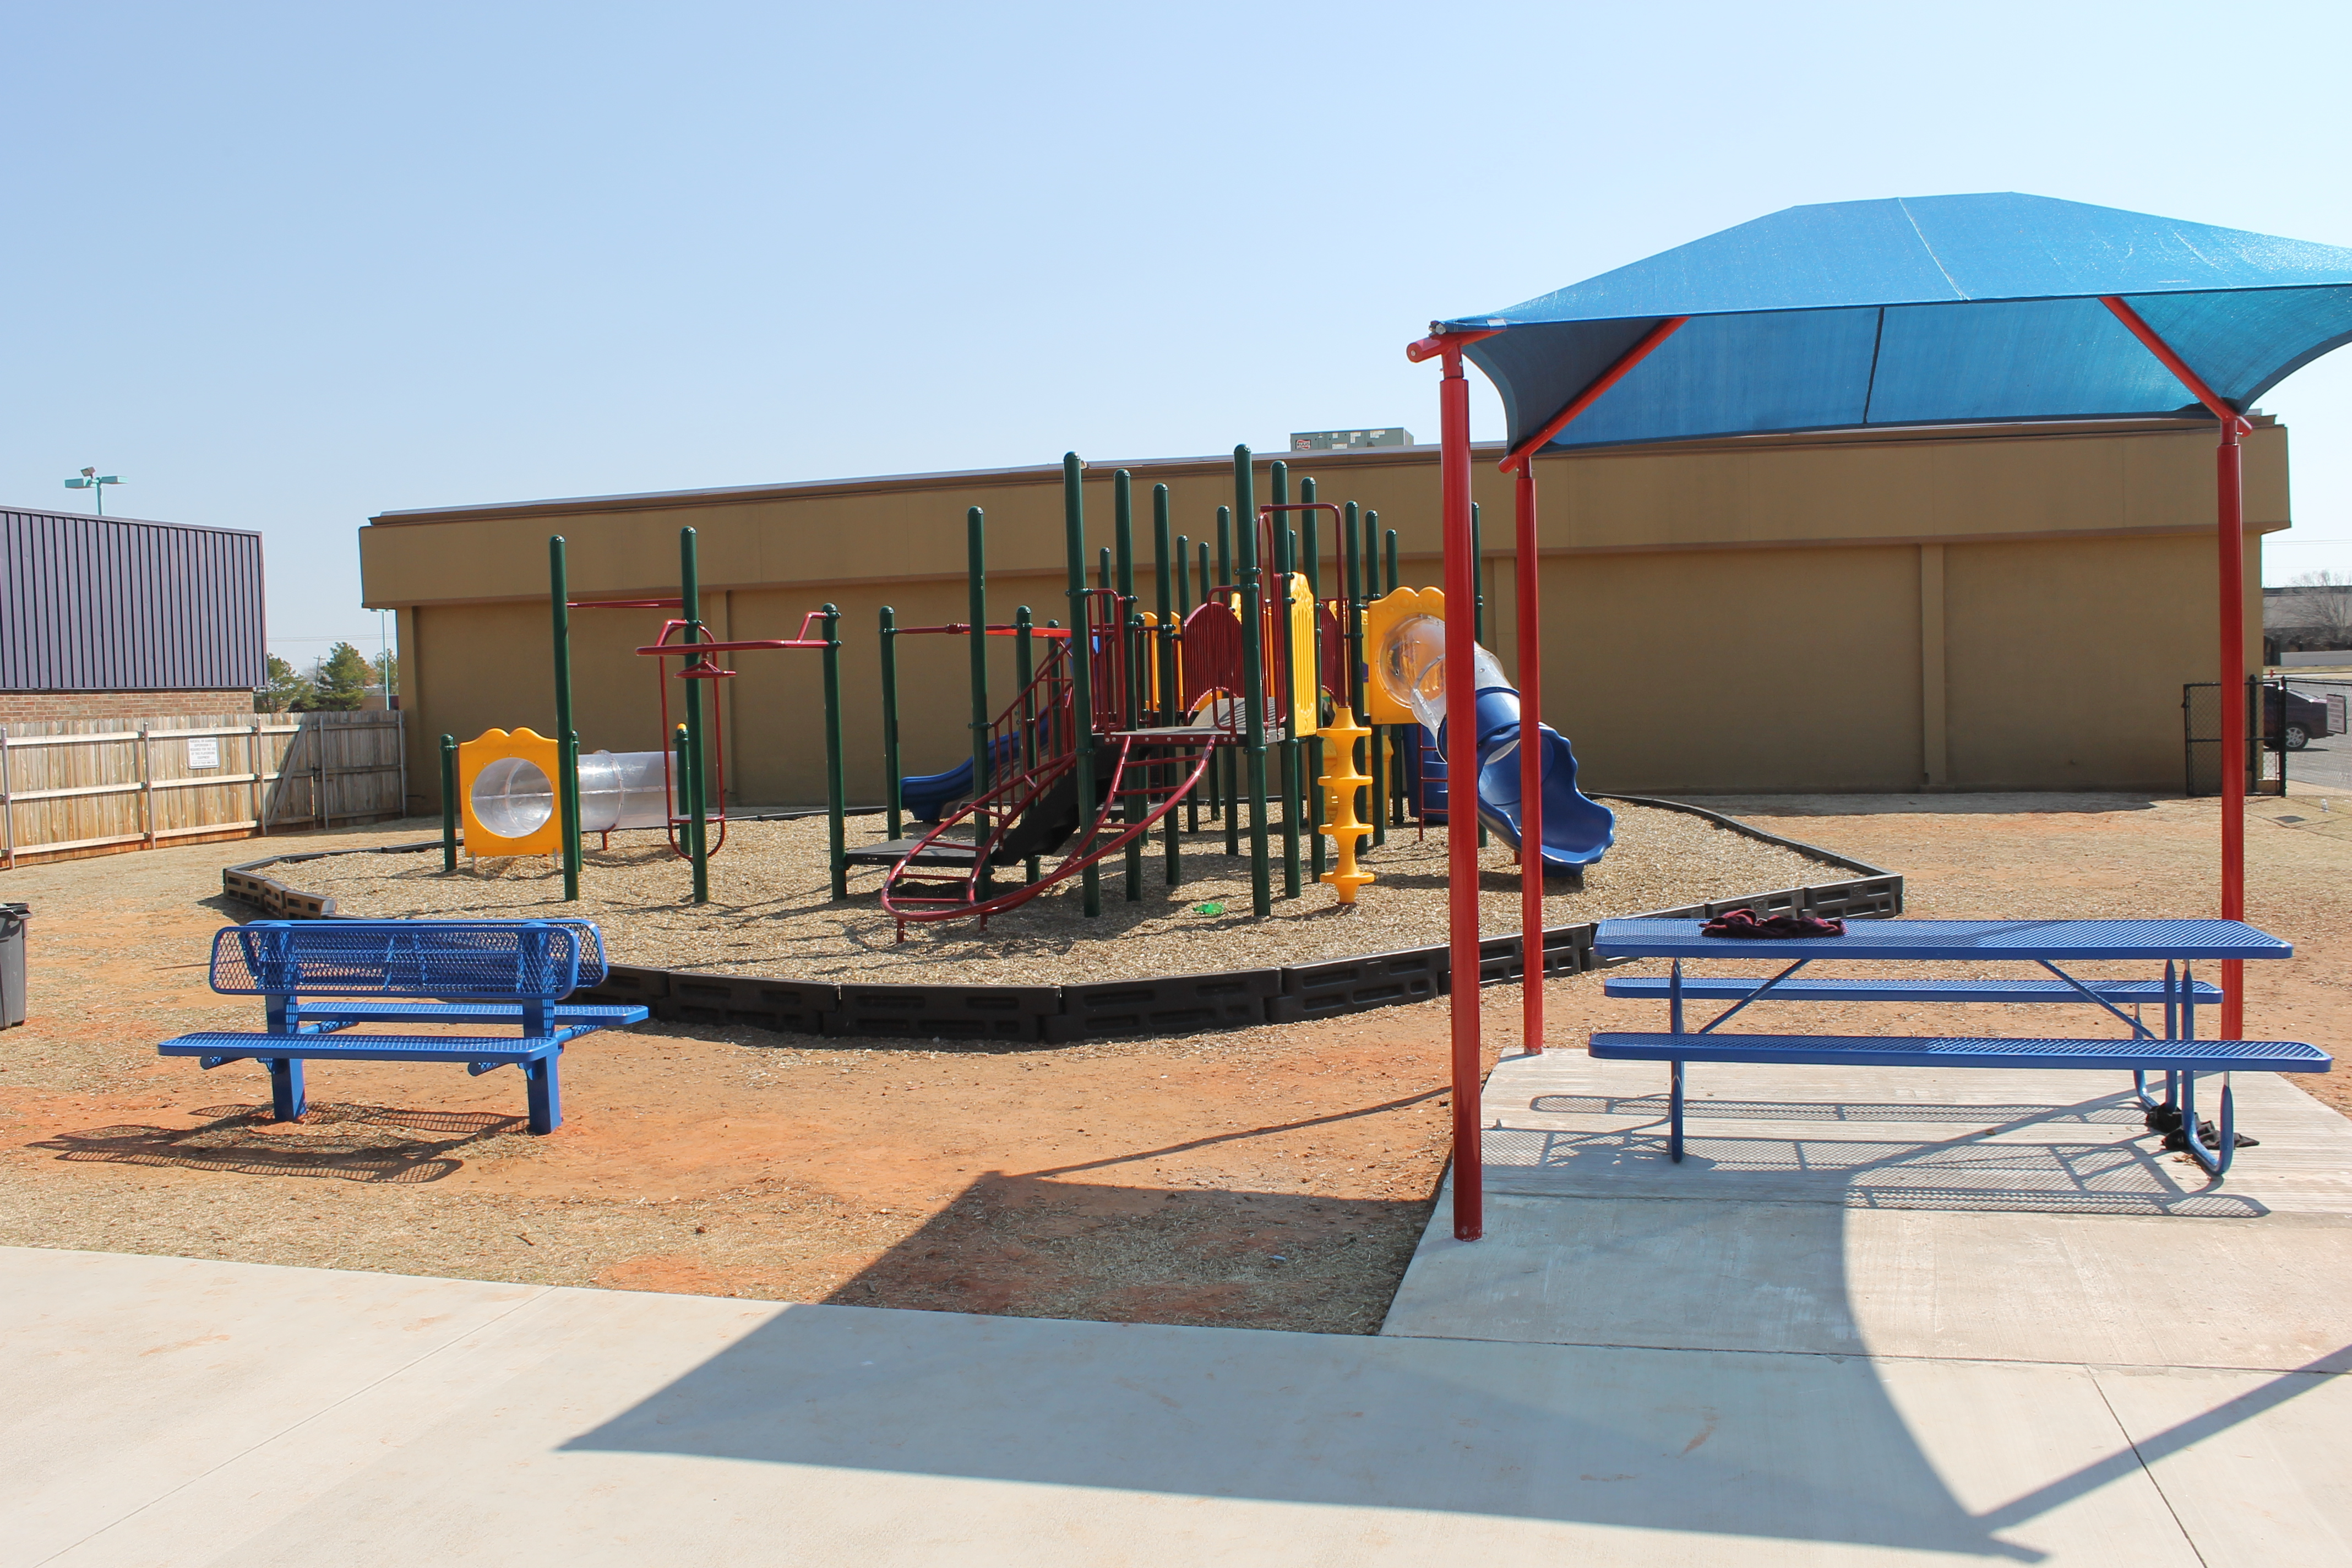 Noahs Park and Playgrounds, LLC image 15